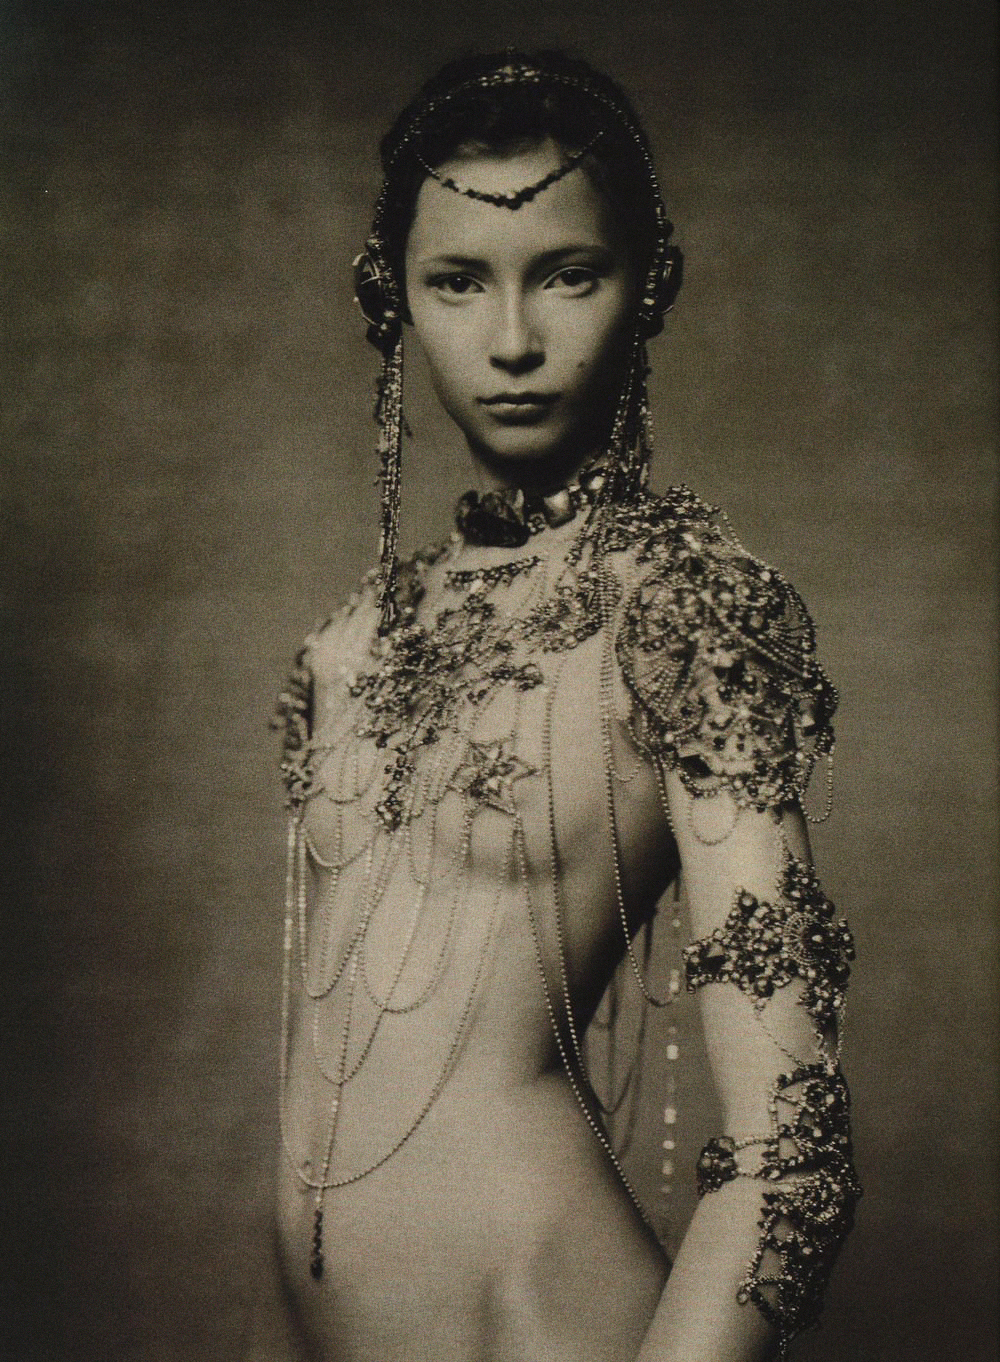 'The Poetic Spirit'   with Tiiu Kuik + Yannick d'Is + Val Garland Alice Gentilucci + Paolo Roversi + Vogue Italia   Frocks = Gaultier Paris